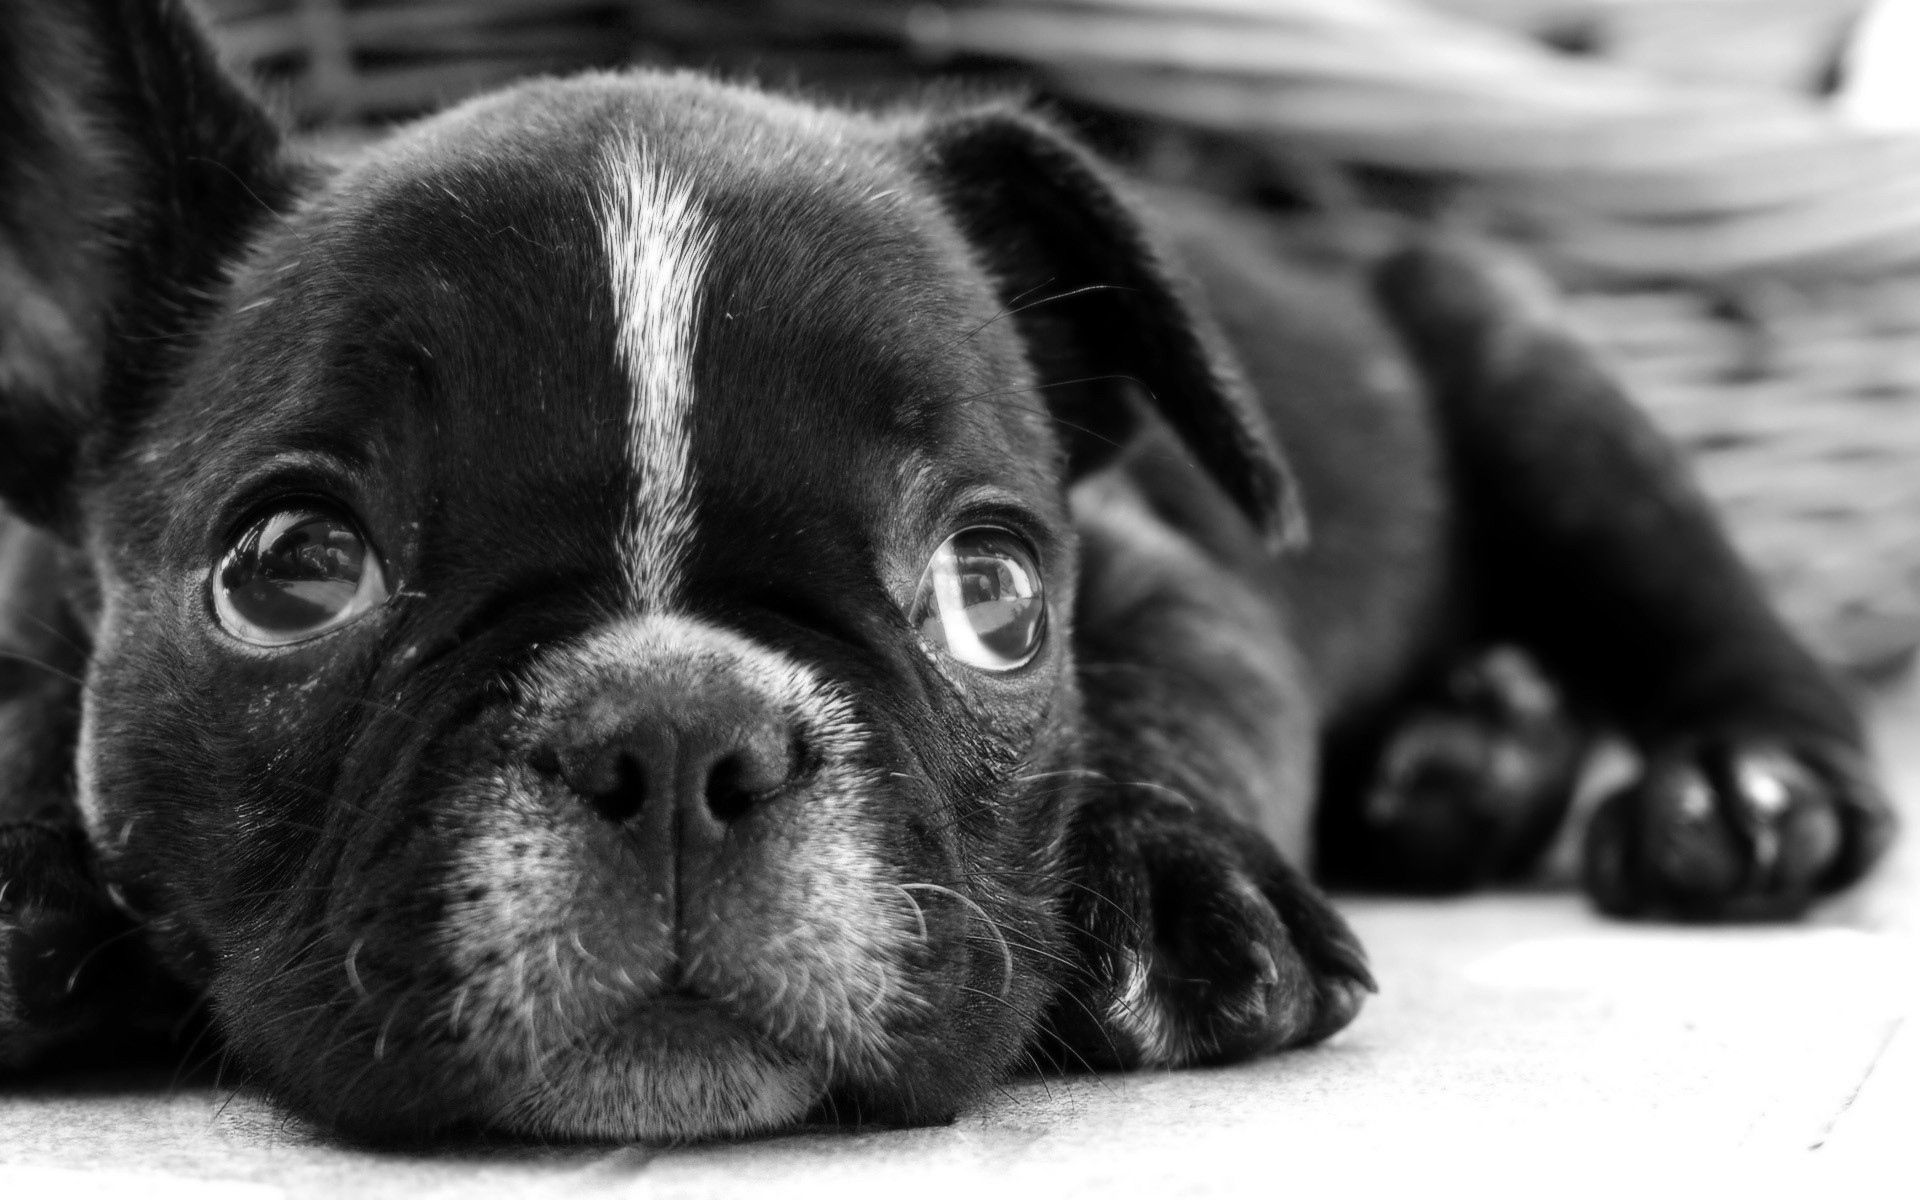 96232 download wallpaper Animals, Bulldog, Puppy, Dog, Bw, Chb, Muzzle, Sight, Opinion, Sadness, Sorrow screensavers and pictures for free